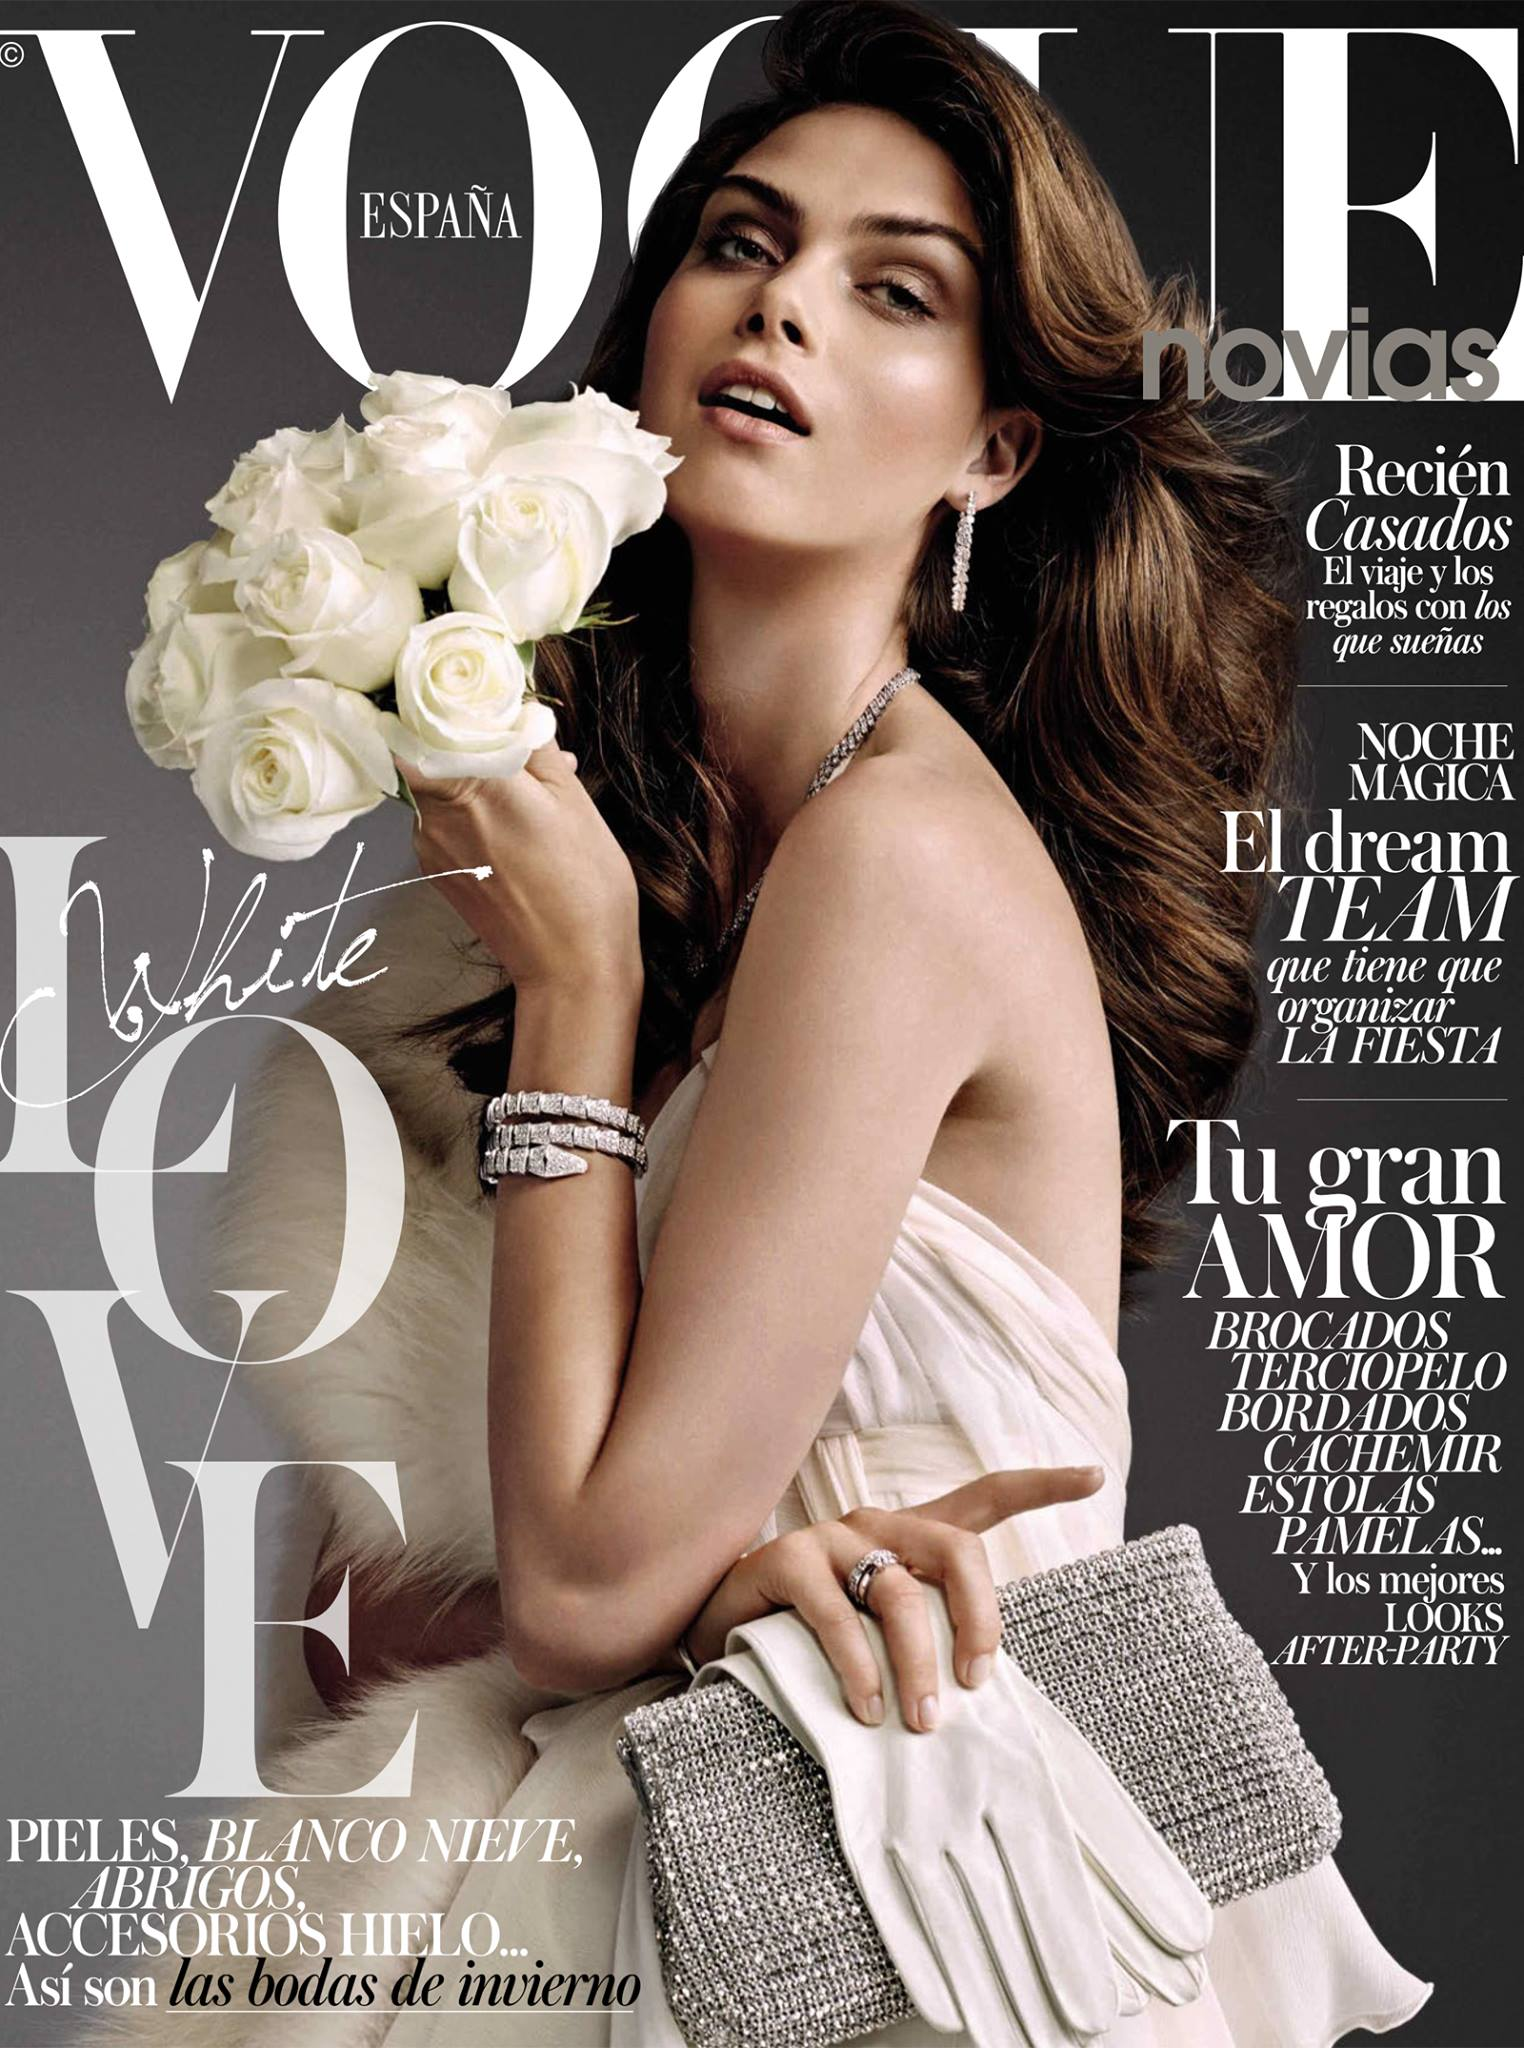 Vogue España Novias October 2014 | Andoni & Arantxa | Monster Management | Vogue España Novias | Sara Fernández Castro | Numerique Retouch Photo Retouching Studio